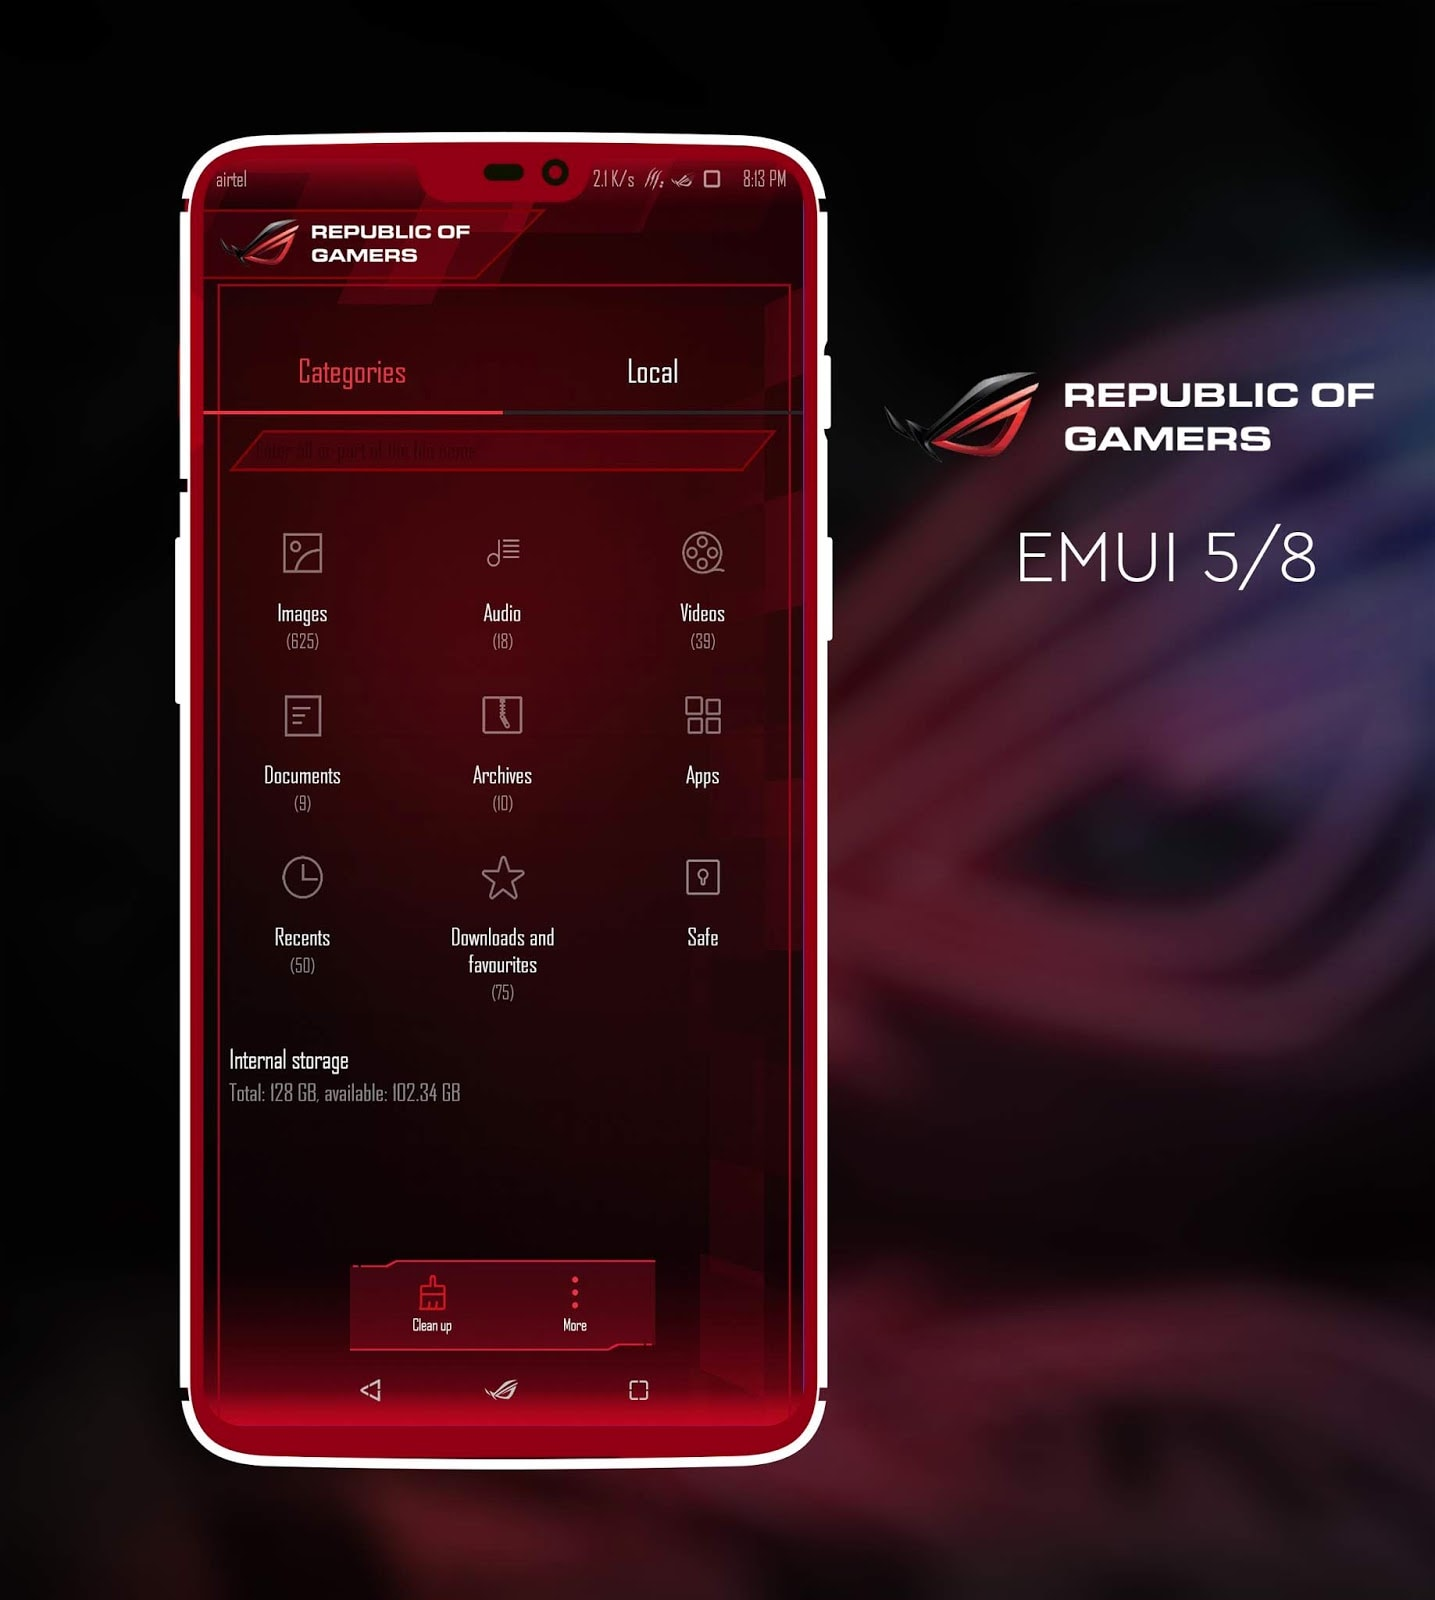 Asus ROG EMUI Theme Screens 1